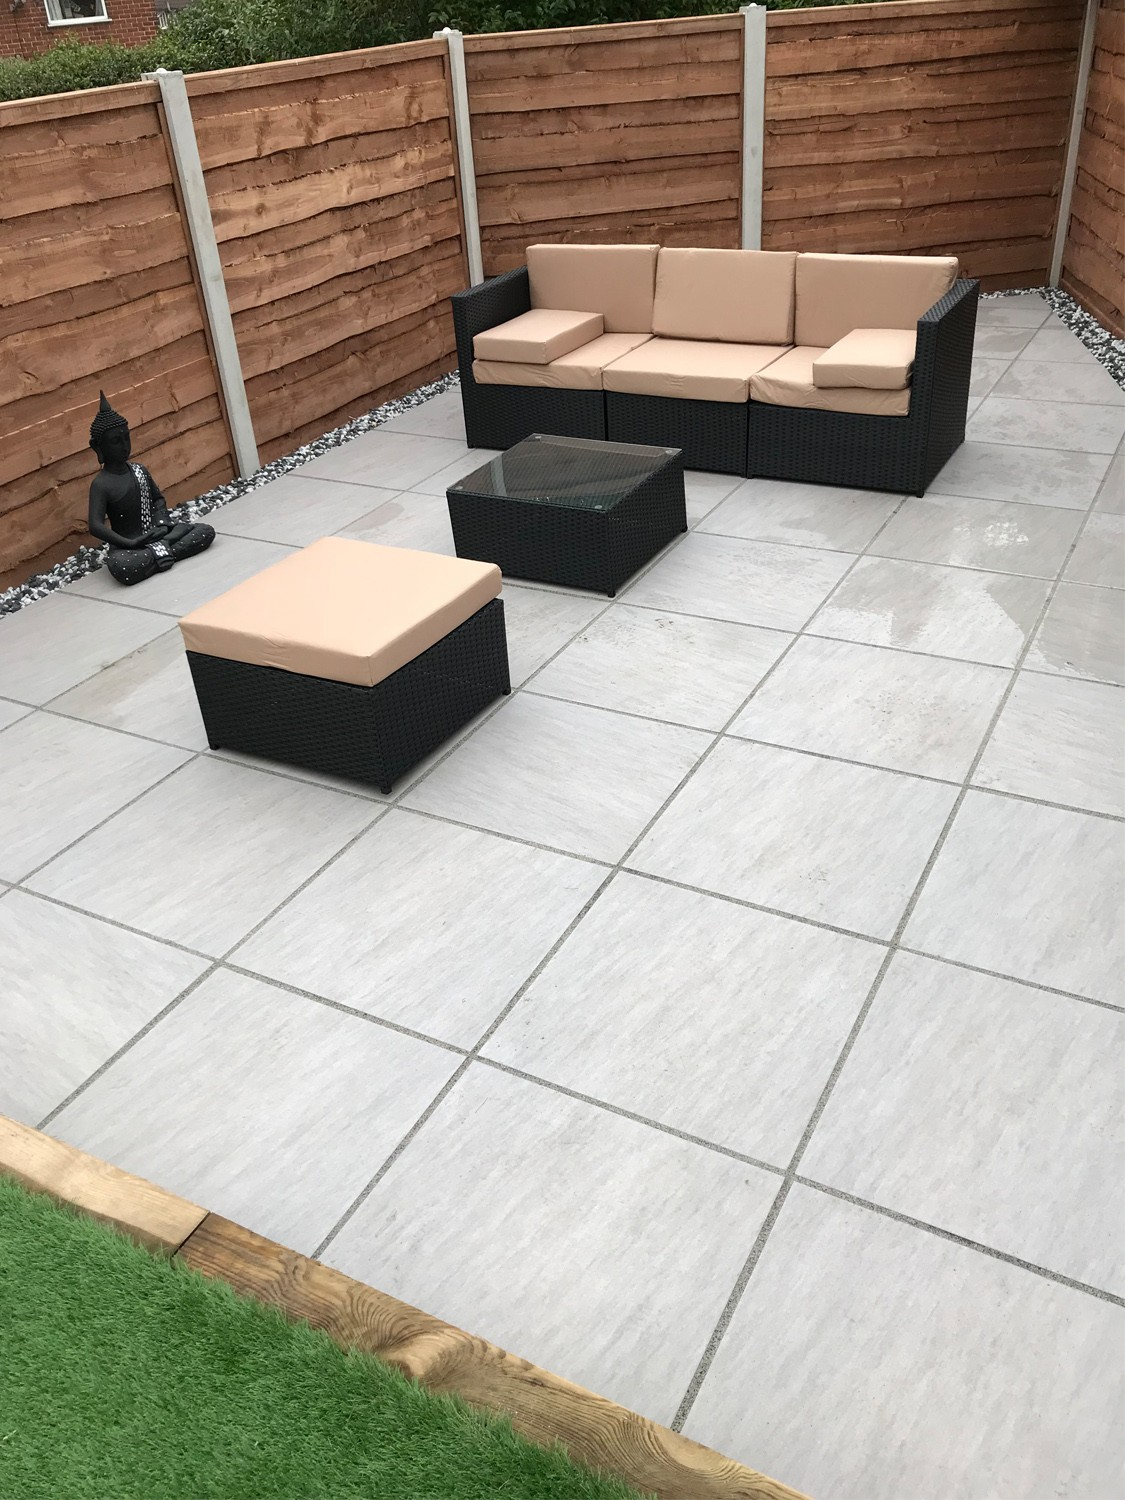 patio slabs. Patio Slabs. Simple Quartz Gris Smooth Stone Effect Porcelain Paving Slabs 600x600 Pack Throughout A